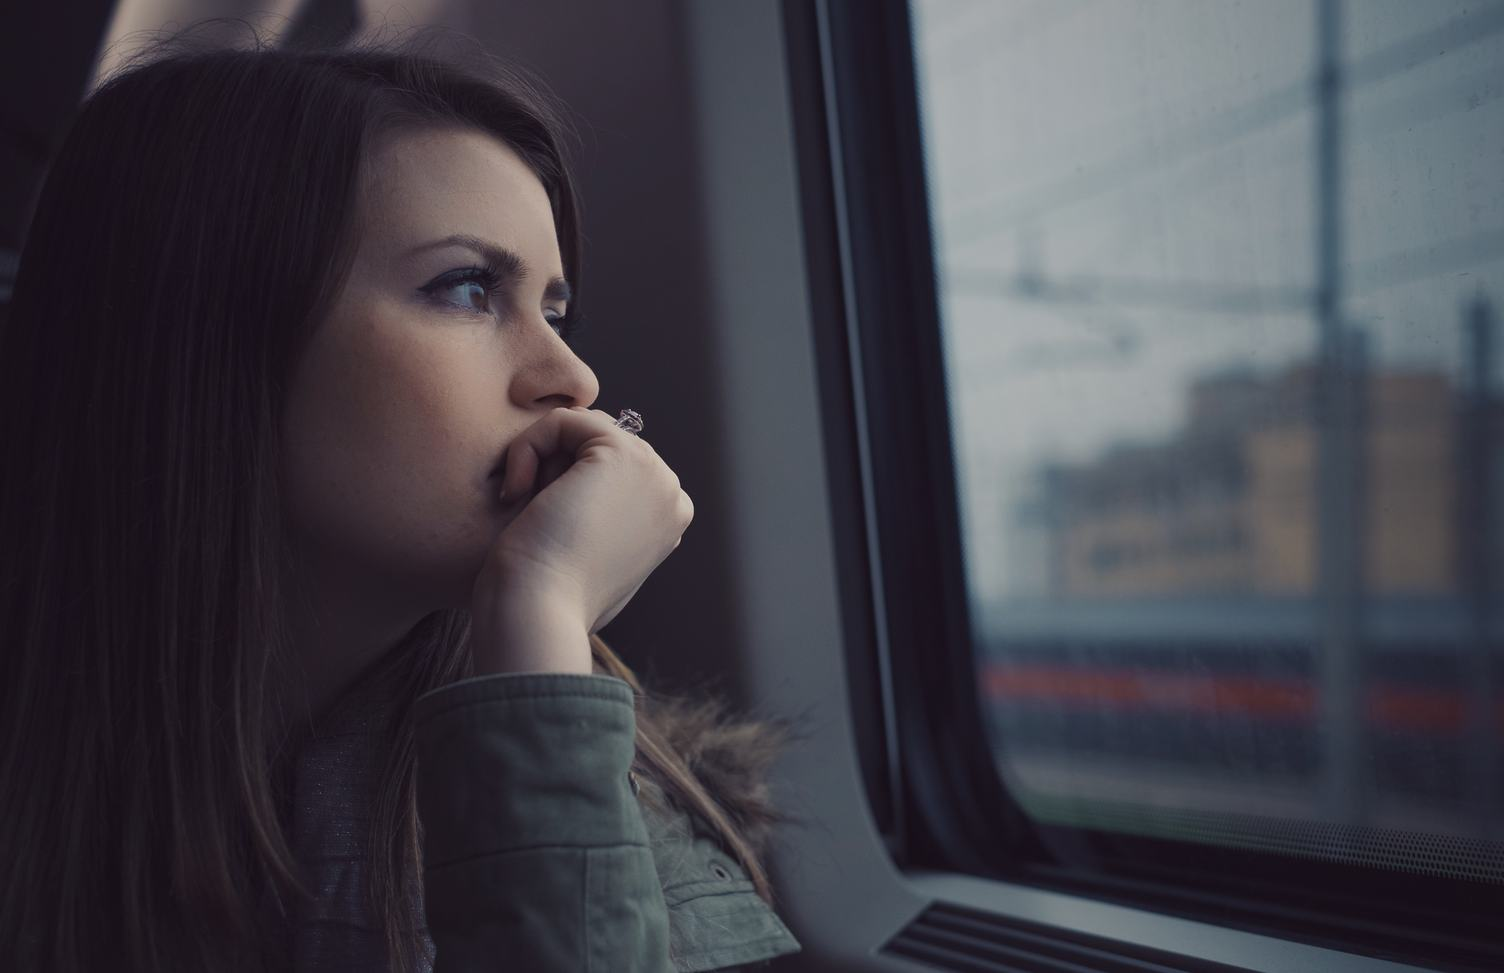 Girl Looking Out the Window Sitting at Train